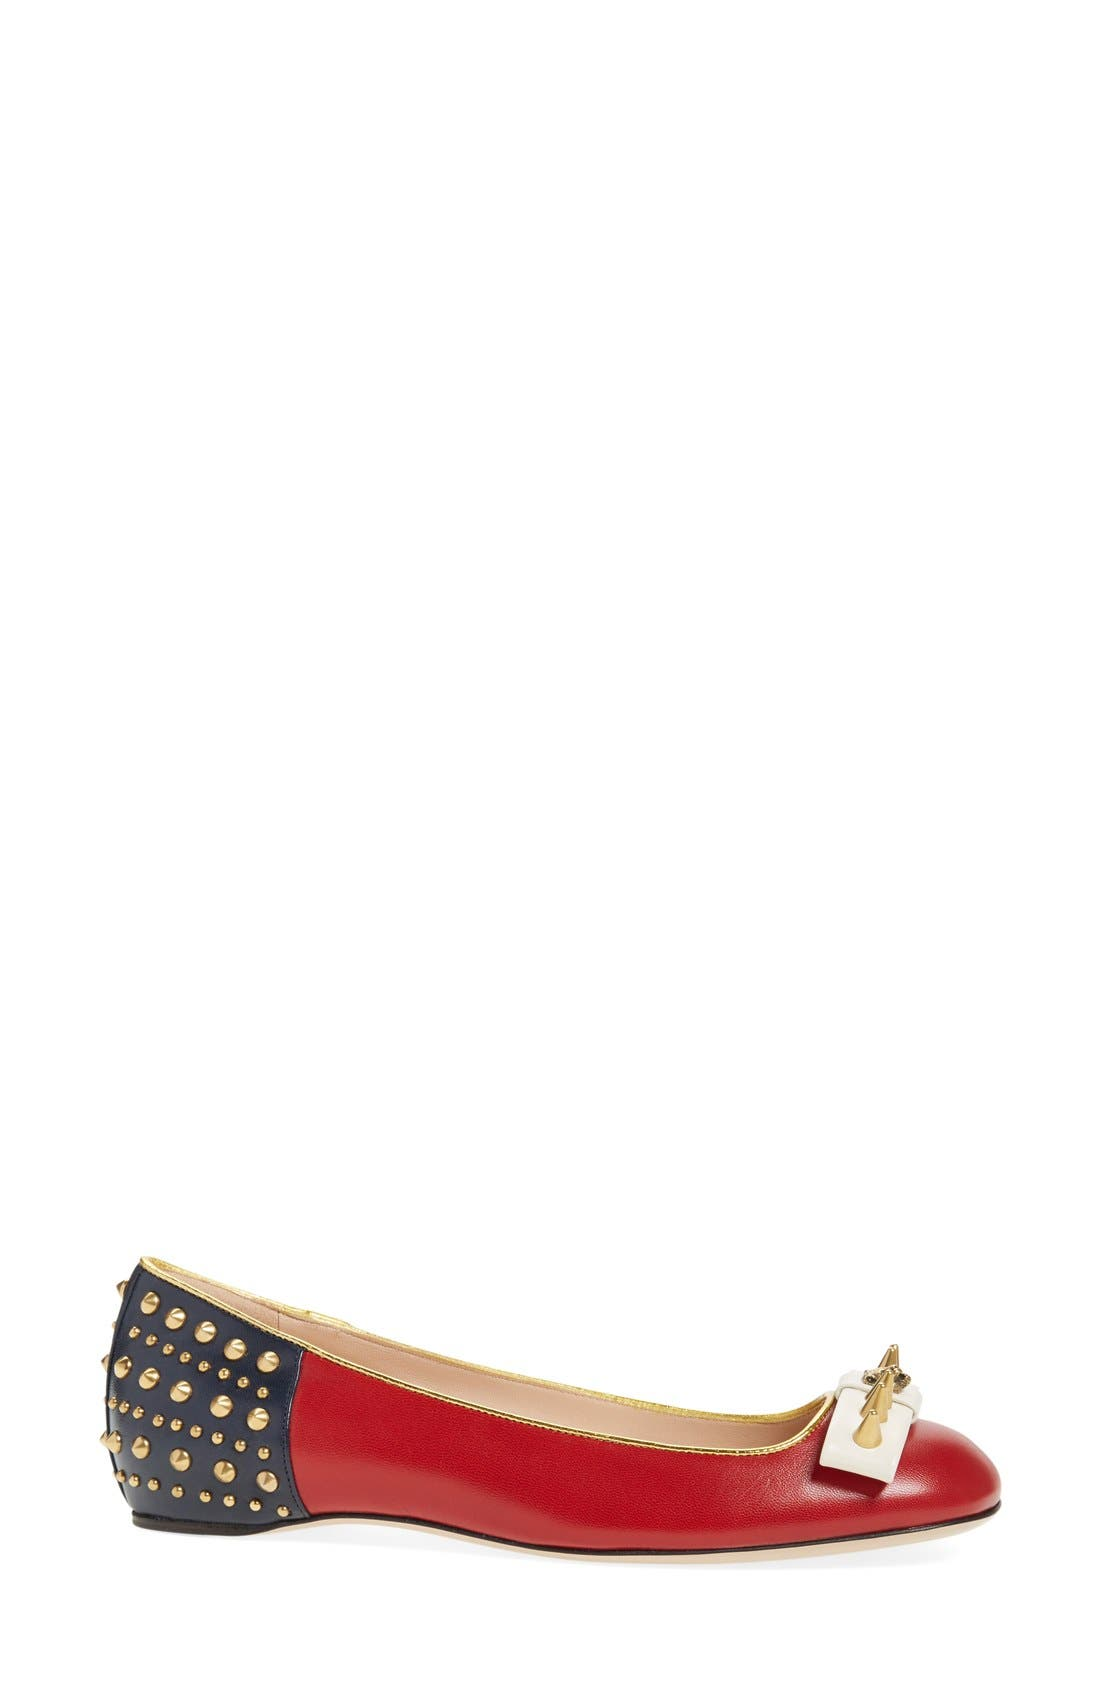 'Lexi' Studded Square Toe Flat,                             Alternate thumbnail 4, color,                             600